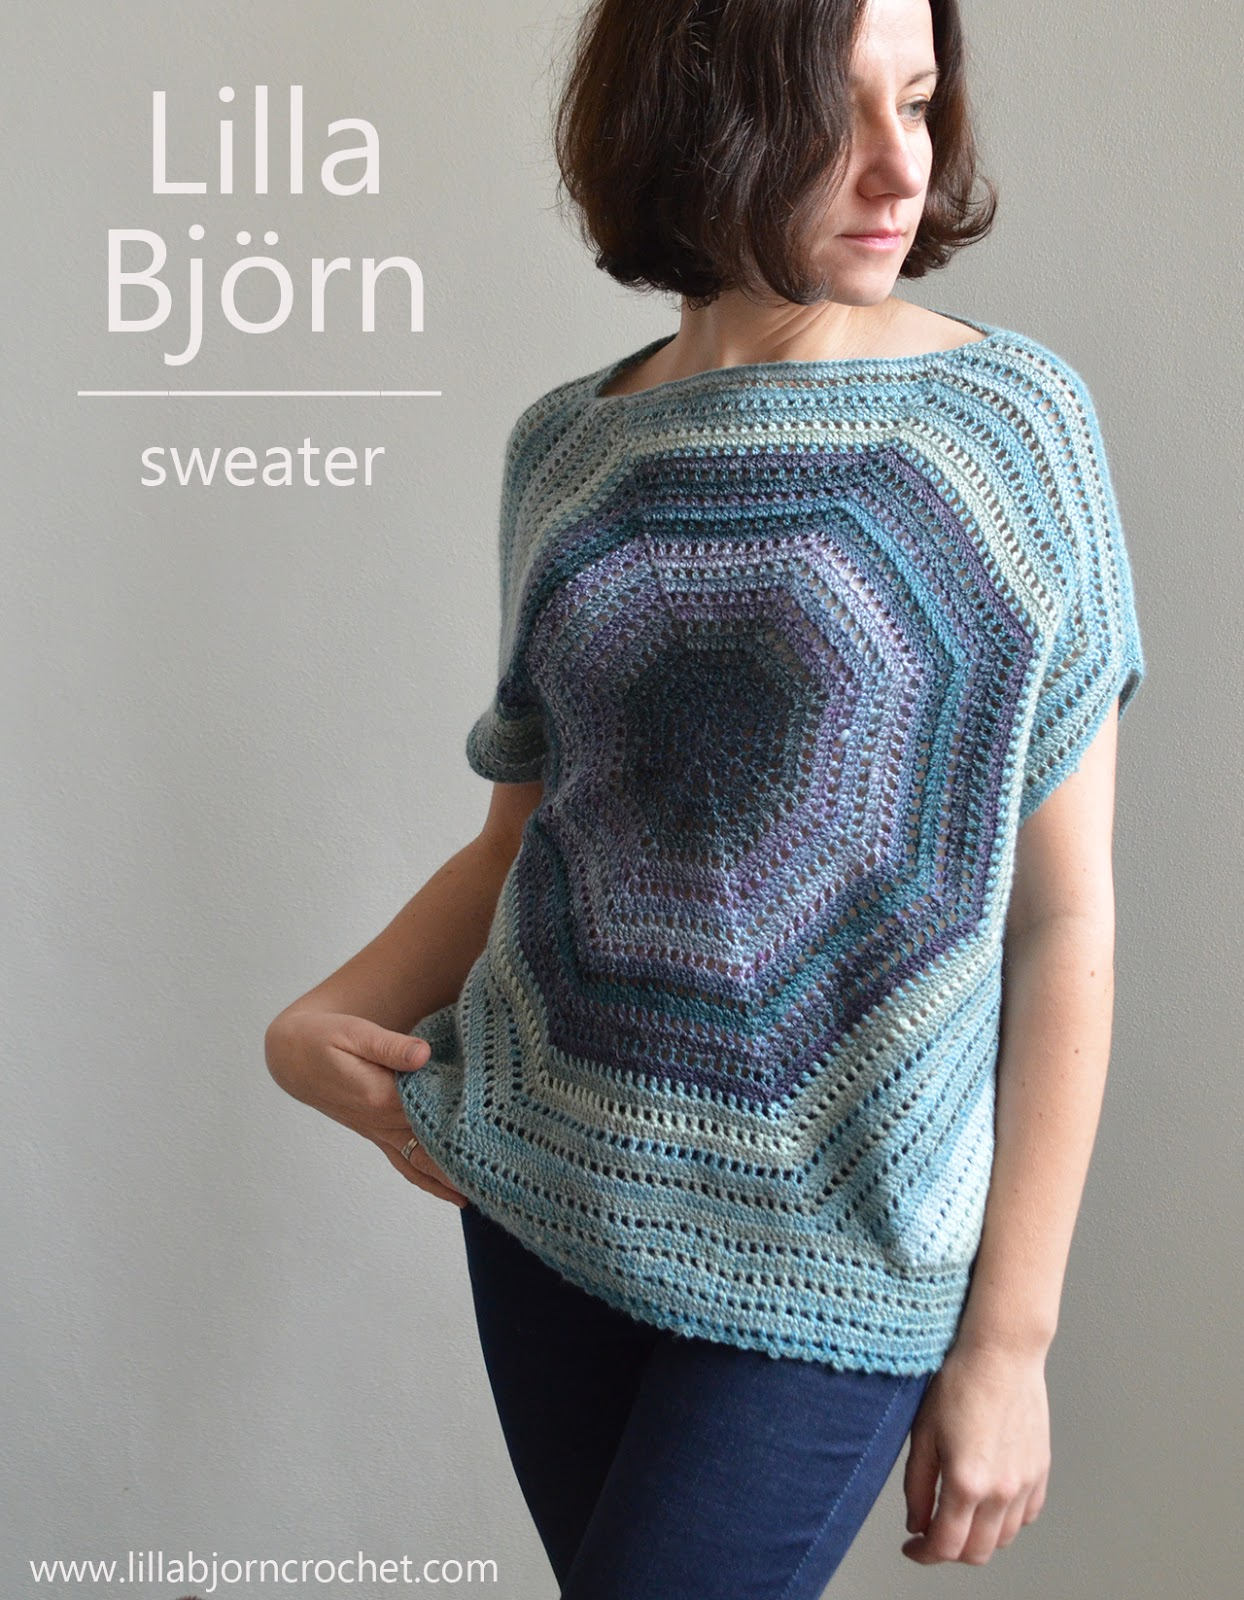 Lilla Björn Sweater: Reveal | LillaBjörn\'s Crochet World